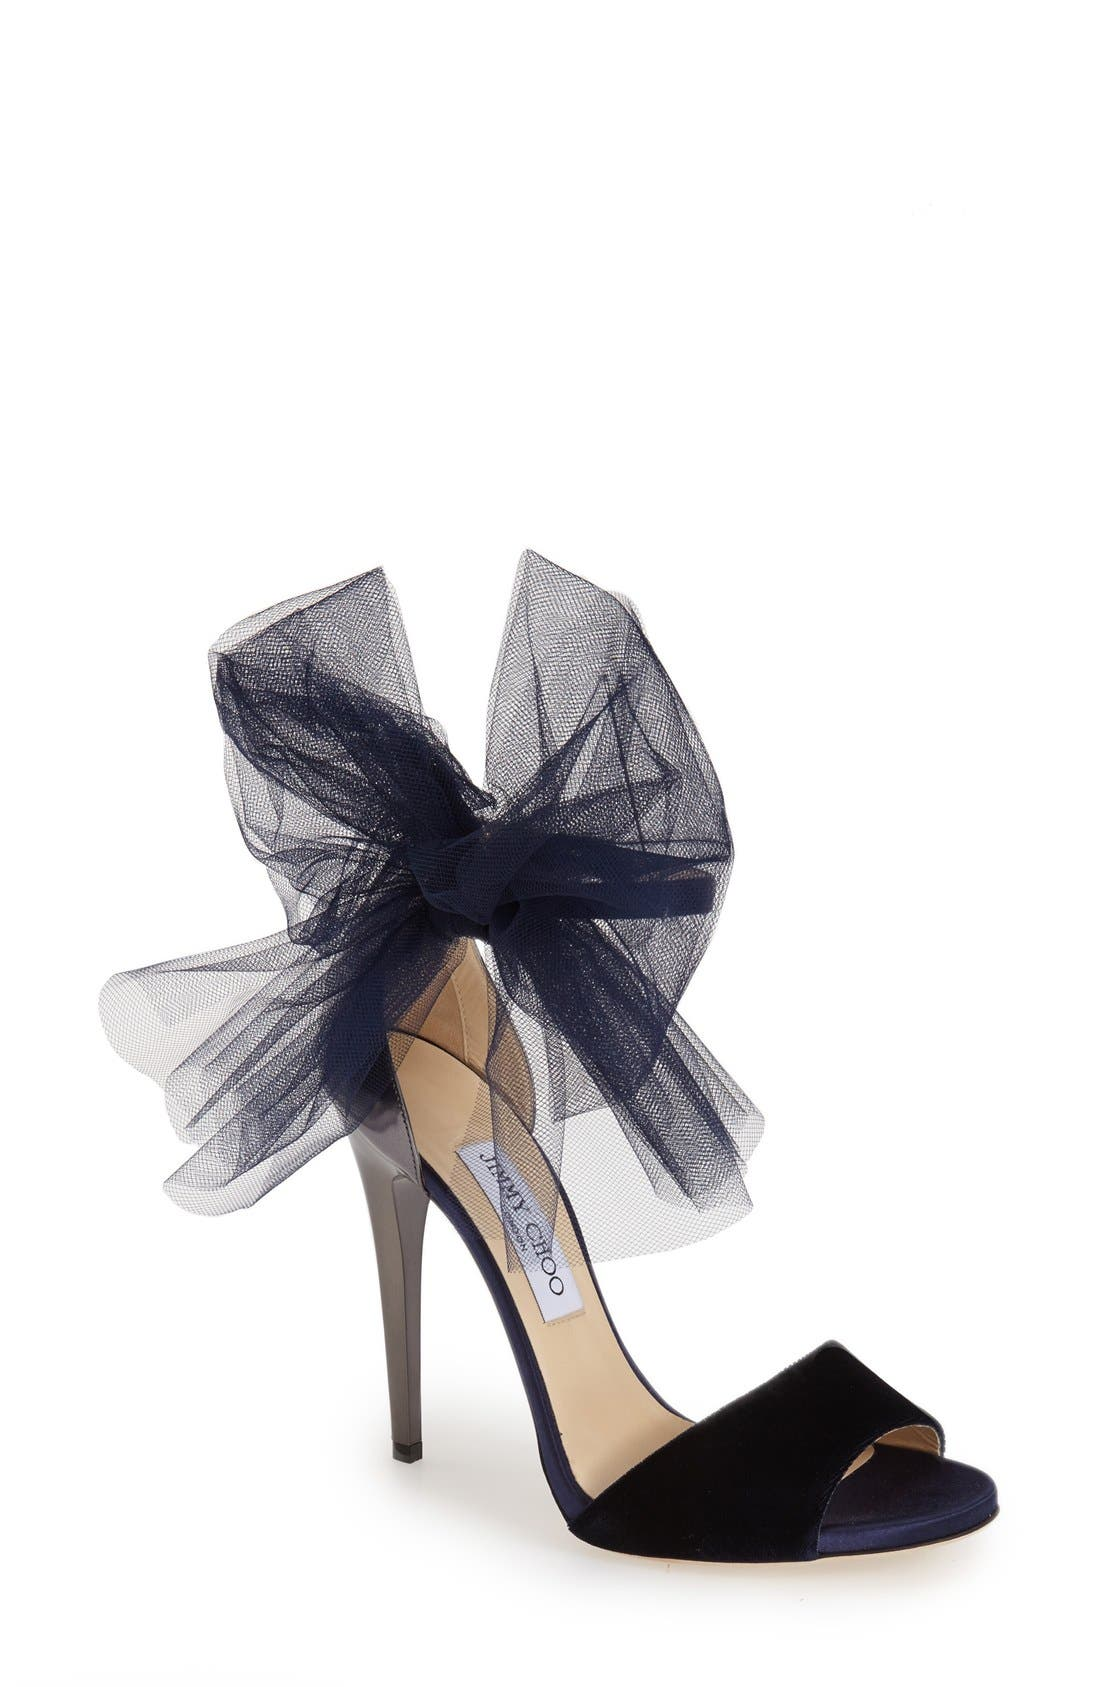 Alternate Image 1 Selected - Jimmy Choo 'Lilyth' Sandal (Women)